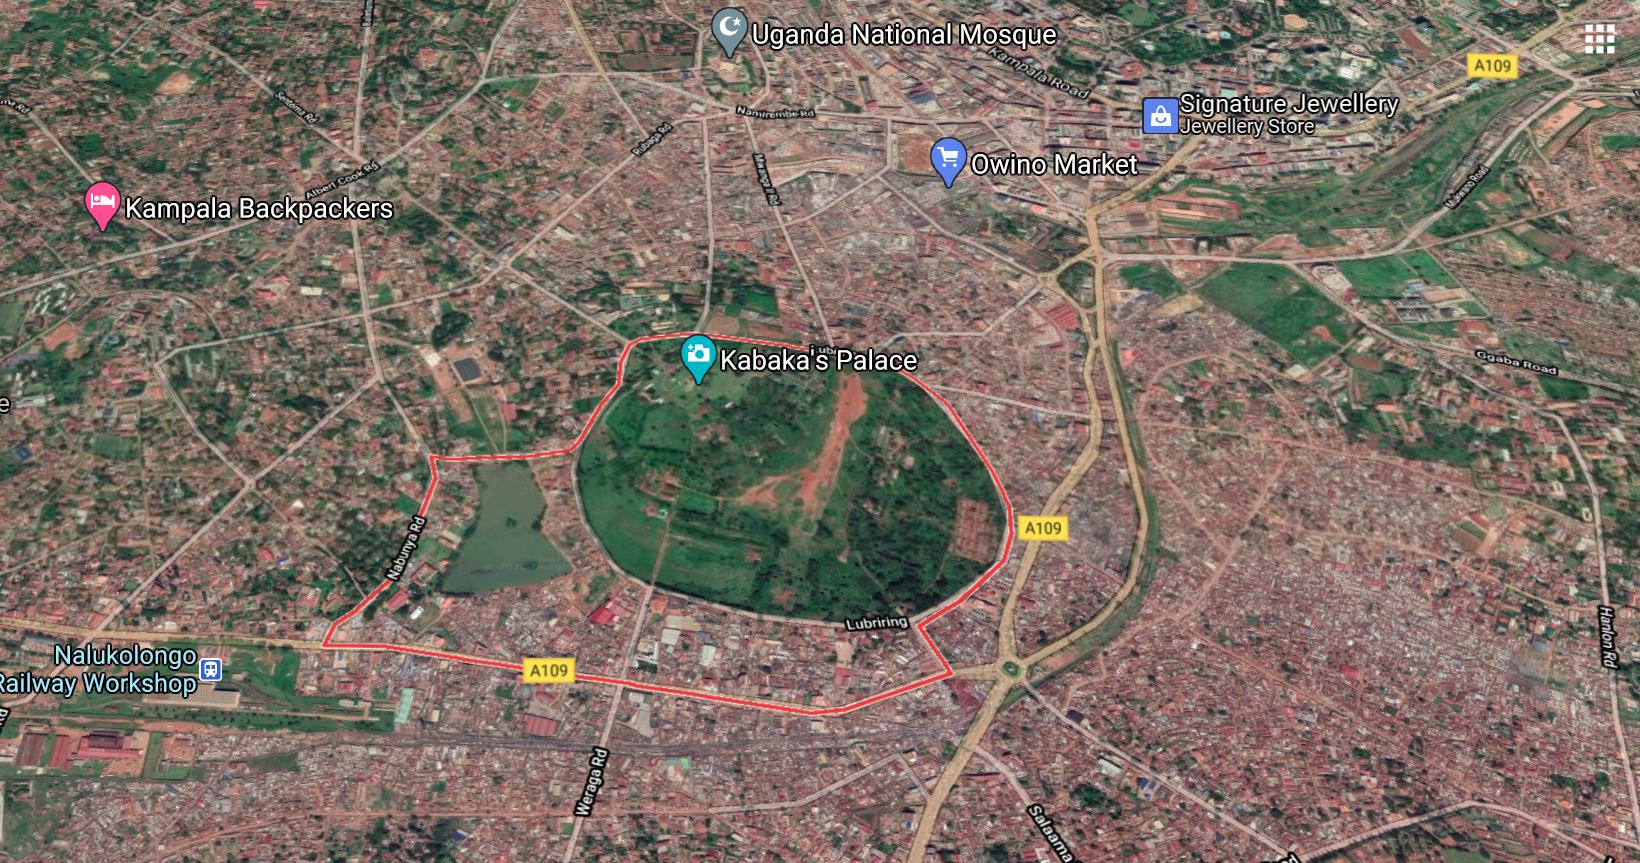 Aerial map showing the Lubiri Circle in the center of Kampala.